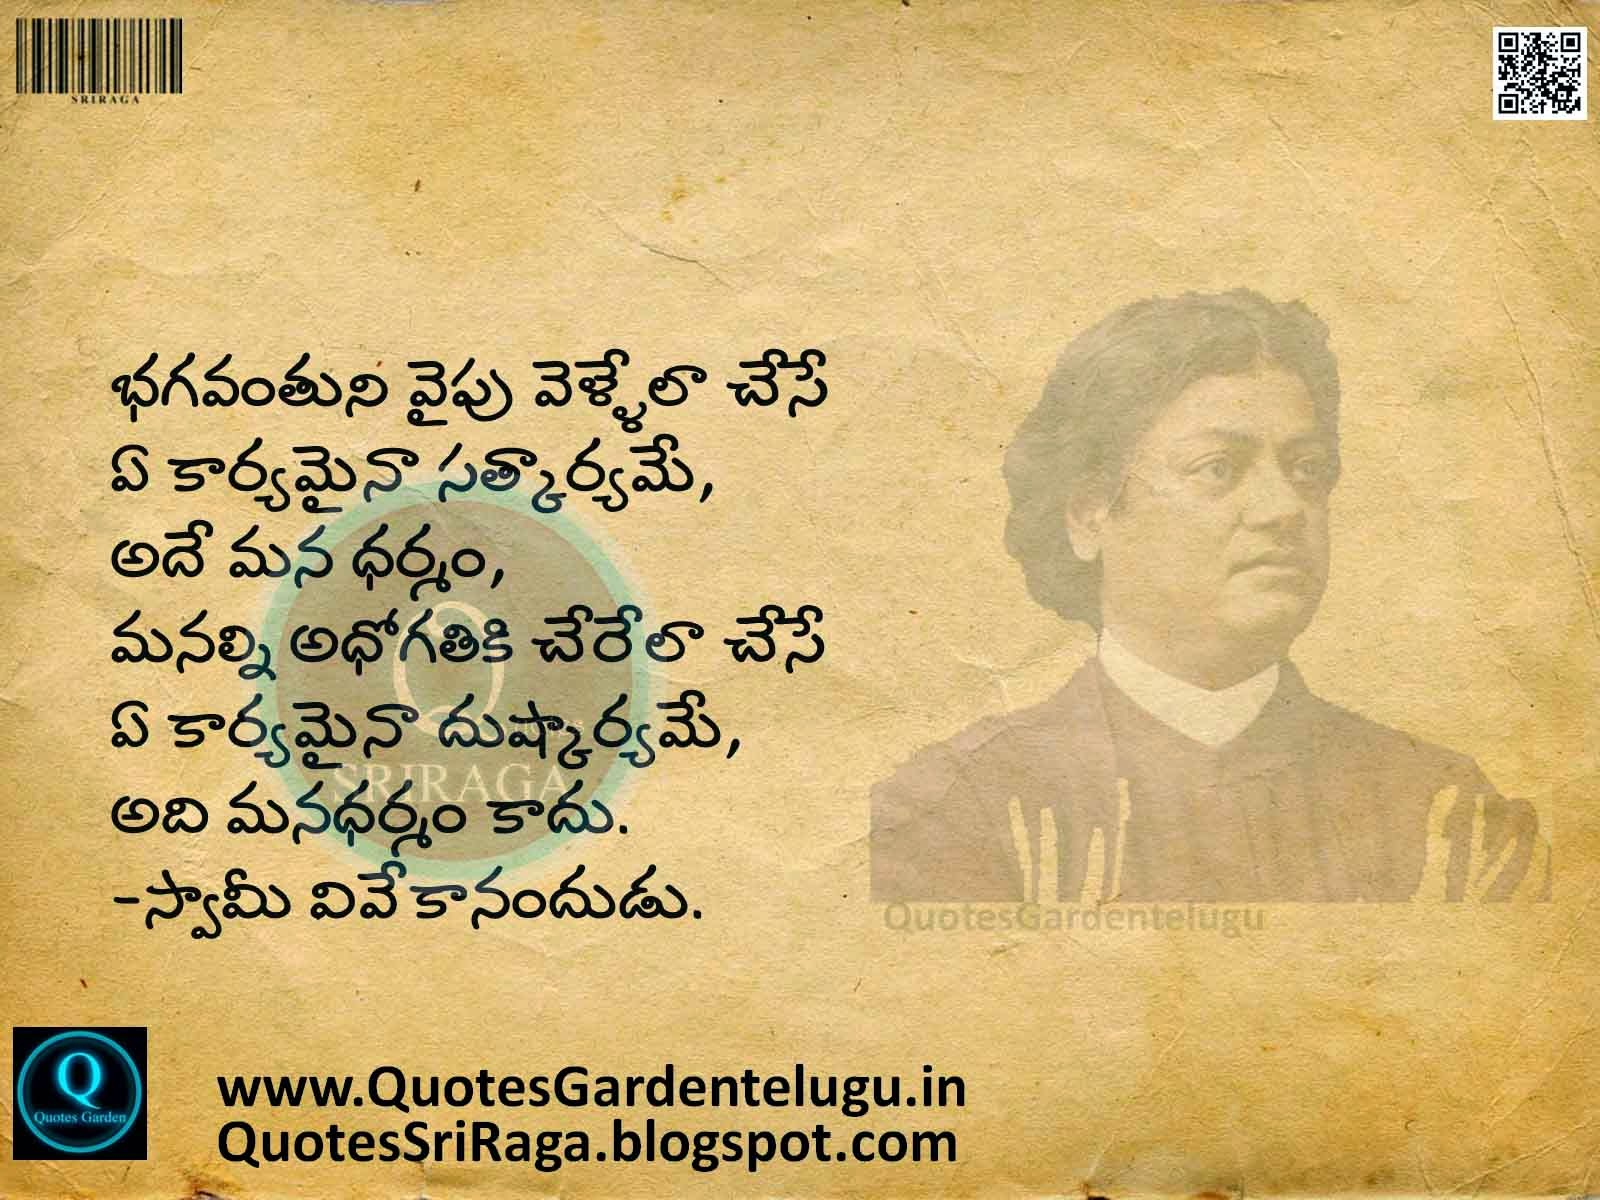 Vivekananda telugu quotes - Vivekananda Best Inpsirational quotes - Vivekananda inspirational quotes in telugu - Vivekanda Good Reads Vivekananda Best Inspirational Quotes HDwallpapers Vivekananda Inspiring Quotes  images